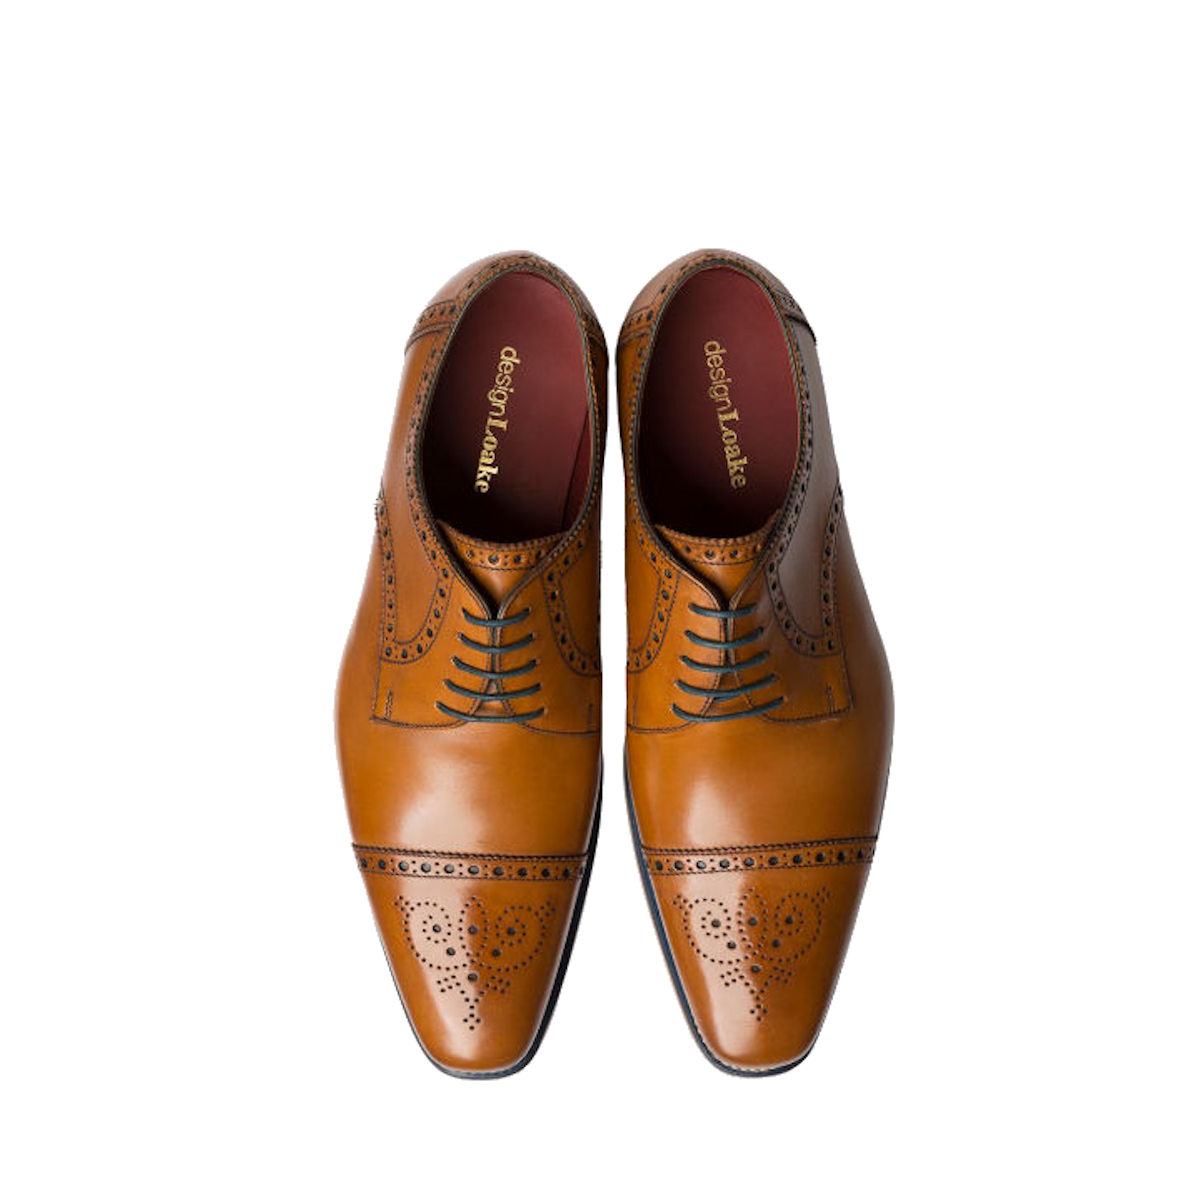 Loake Foley Mens Tan Brogue Derby Lace Up Shoe